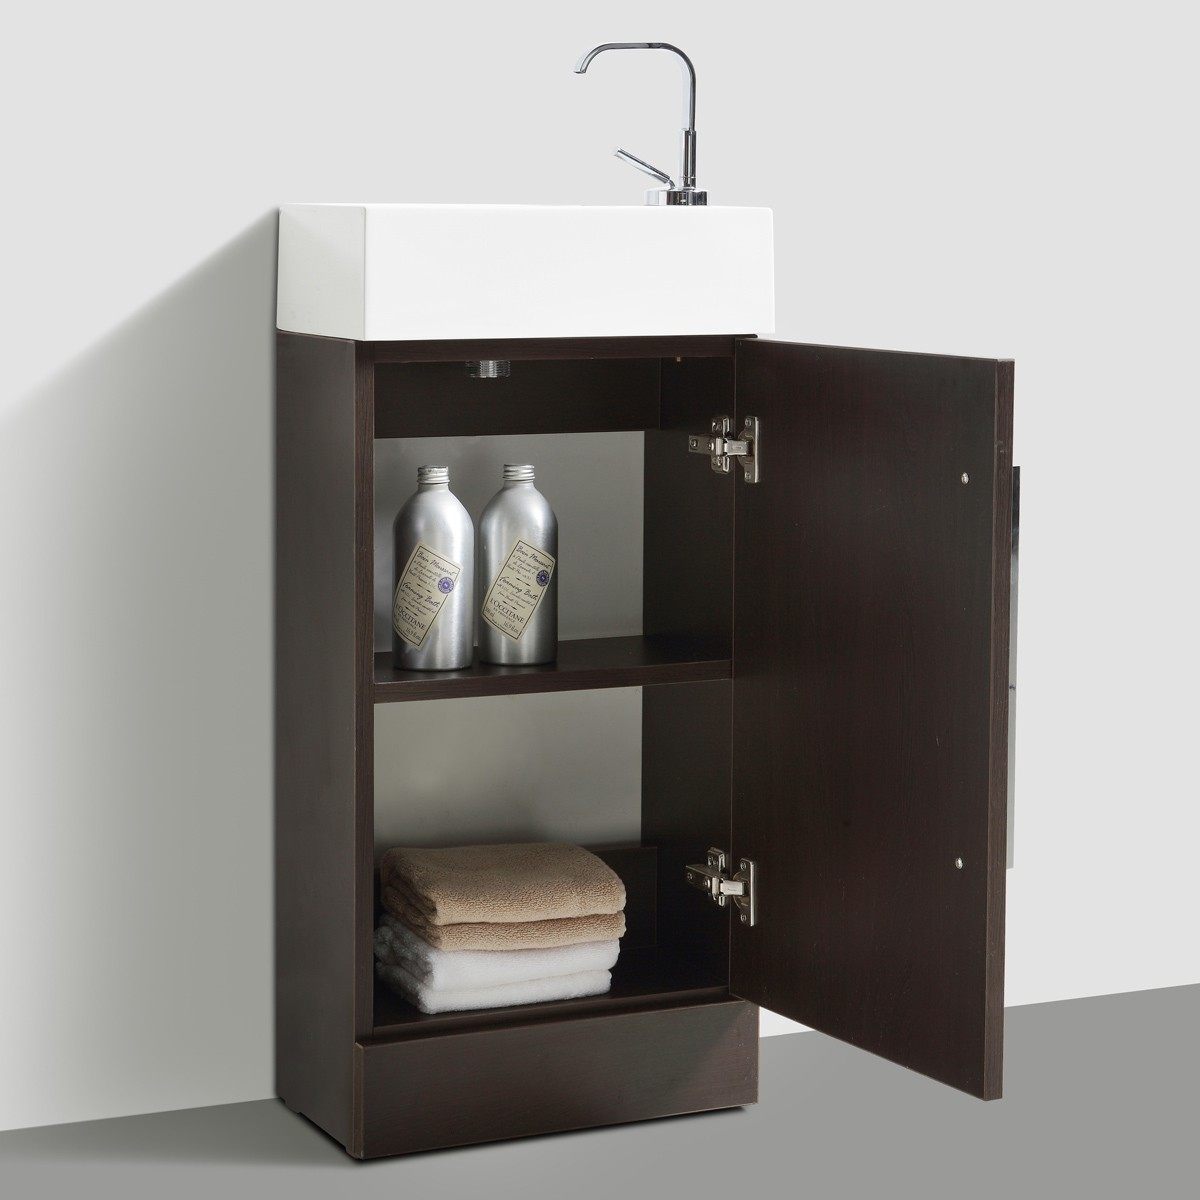 g ste wc badm bel waschbecken mit unterschrank pictures to. Black Bedroom Furniture Sets. Home Design Ideas